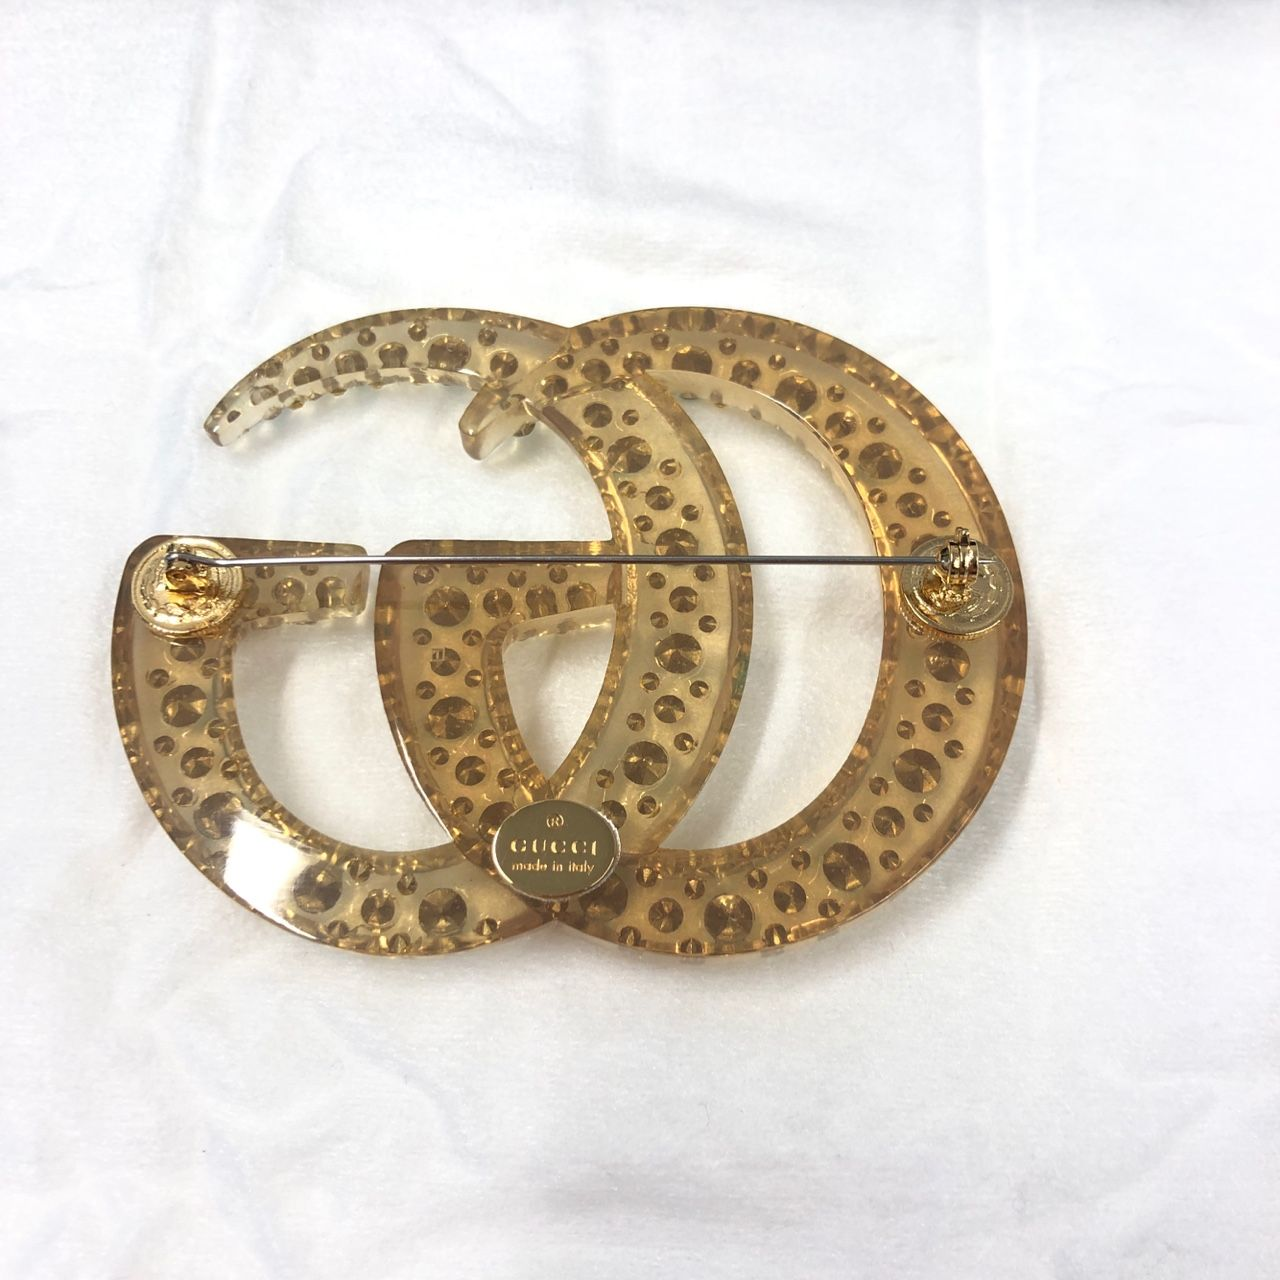 Gucci Gold-tone, resin and crystal brooch 1137476